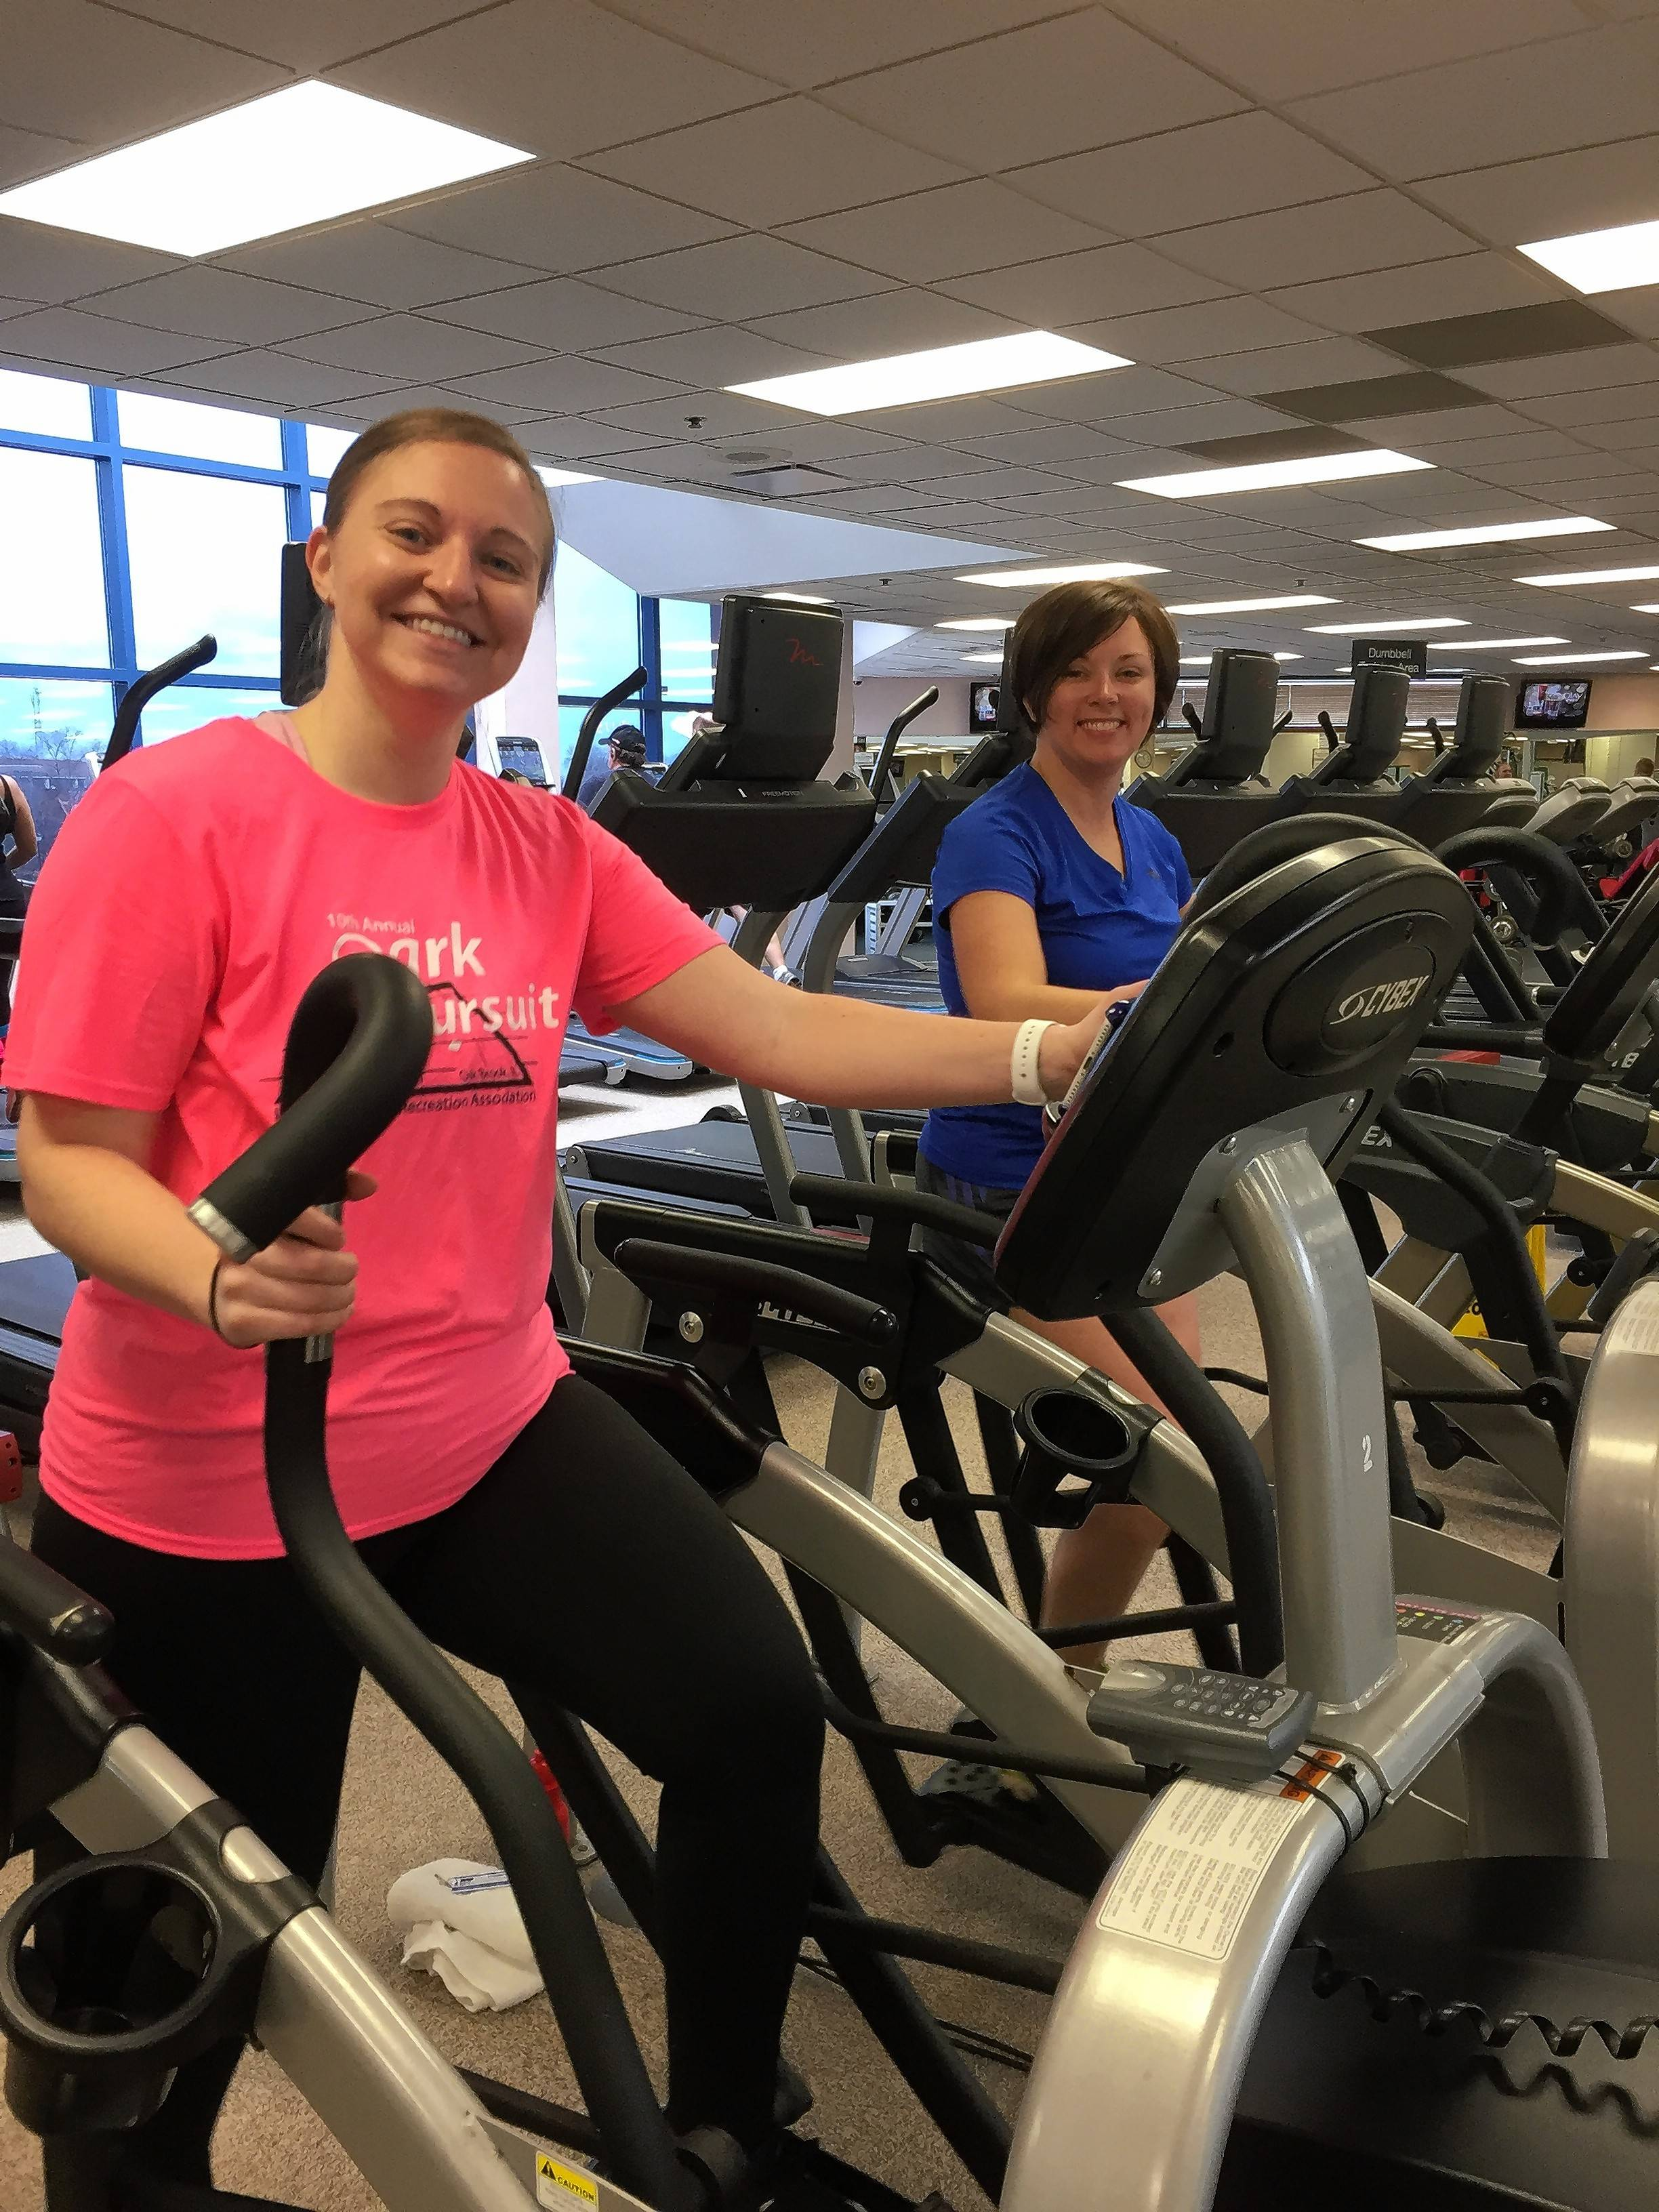 Kim Laper, left, and Andrea Blake of Team Elk Strong from the Elk Grove Park District. Every member except for one came down with sickness but Kim and Andrea found time to hit up the gym.